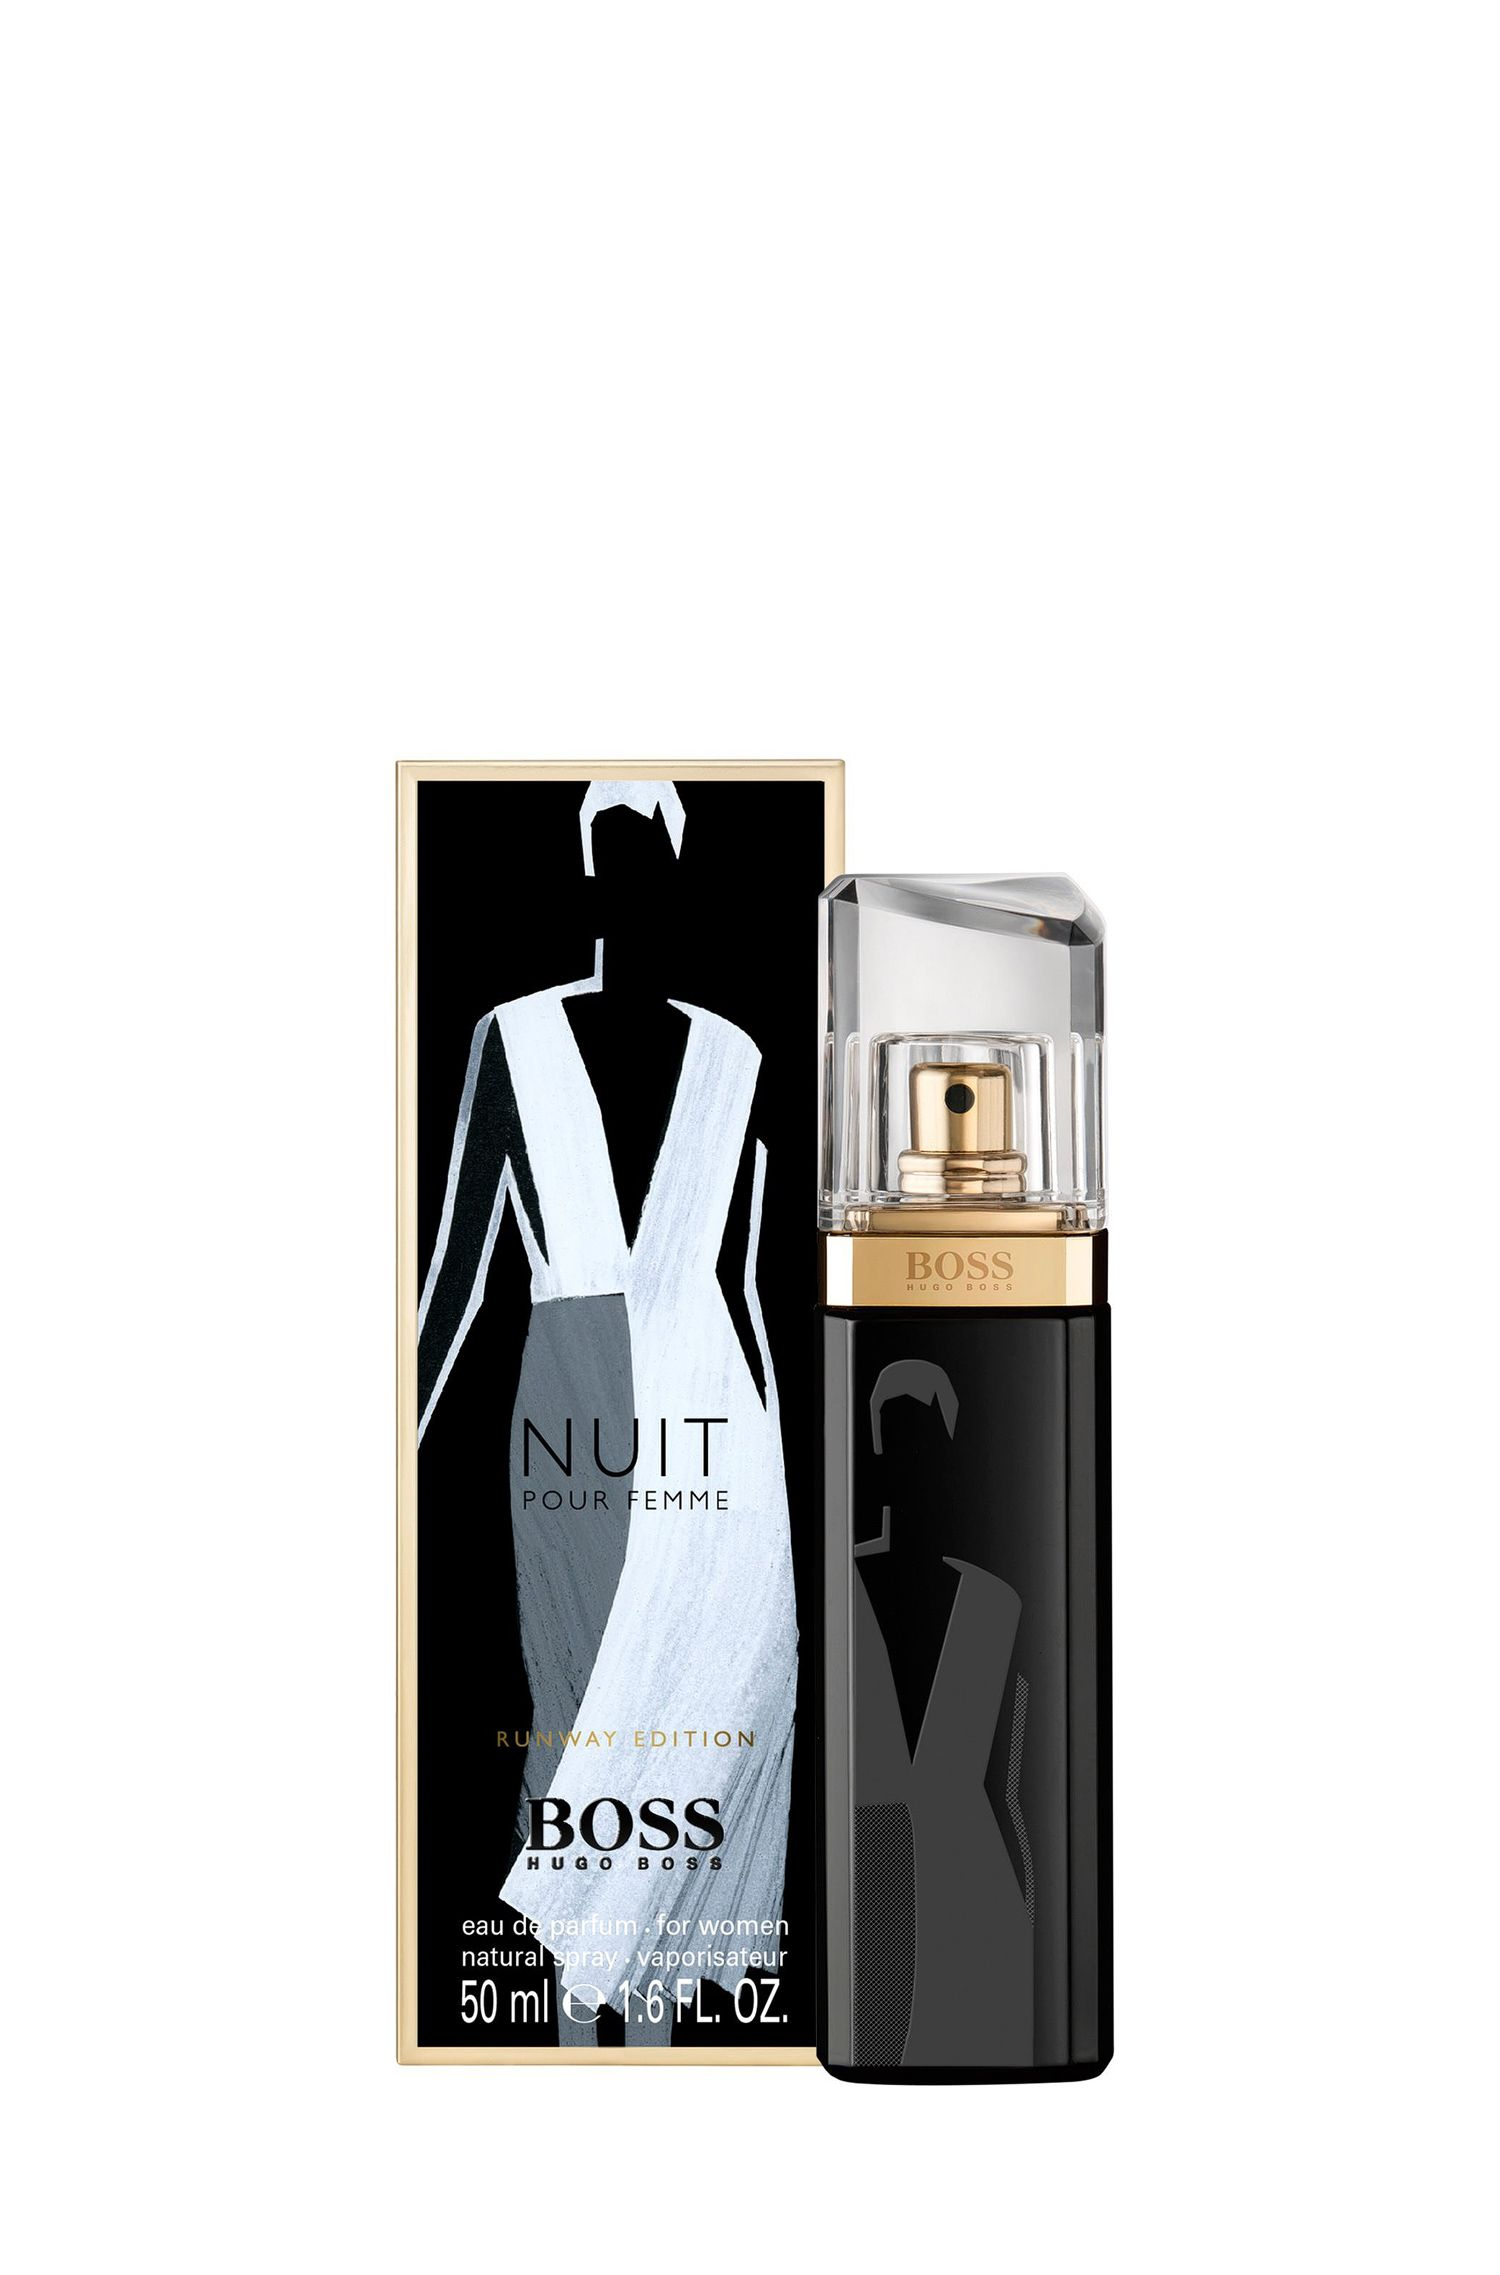 'BOSS Nuit Runway Edition' Eau de Parfum 50 ml, Assorted-Pre-Pack